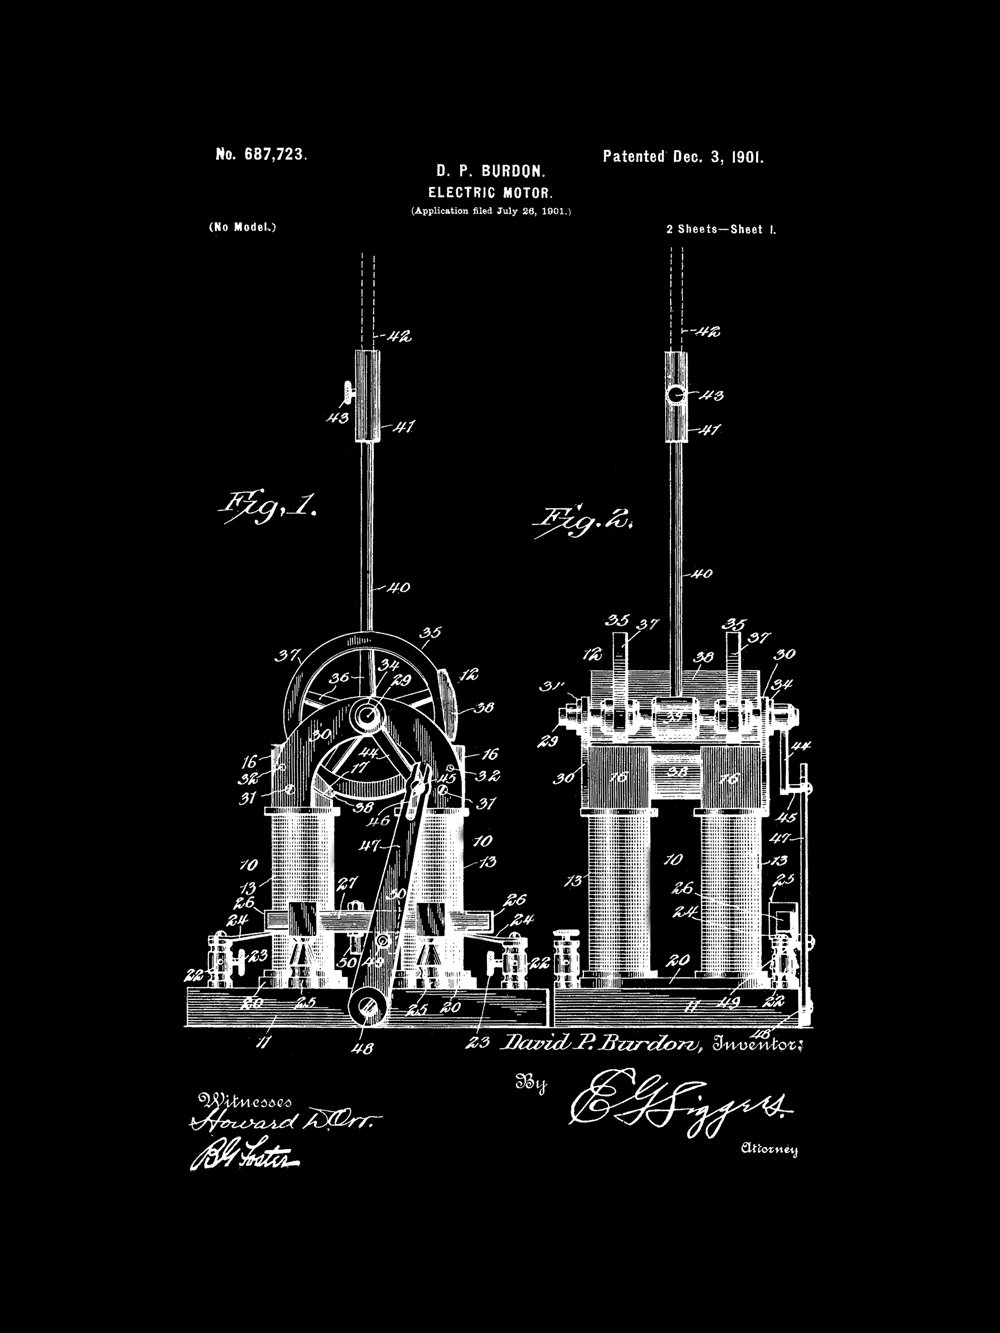 Amazon.com: Framable Patent Art The Original Ready To Frame Décor Tesla Electric  Motor Car Engine 8in By 10in Patent Art Poster Print Vintage Black ...